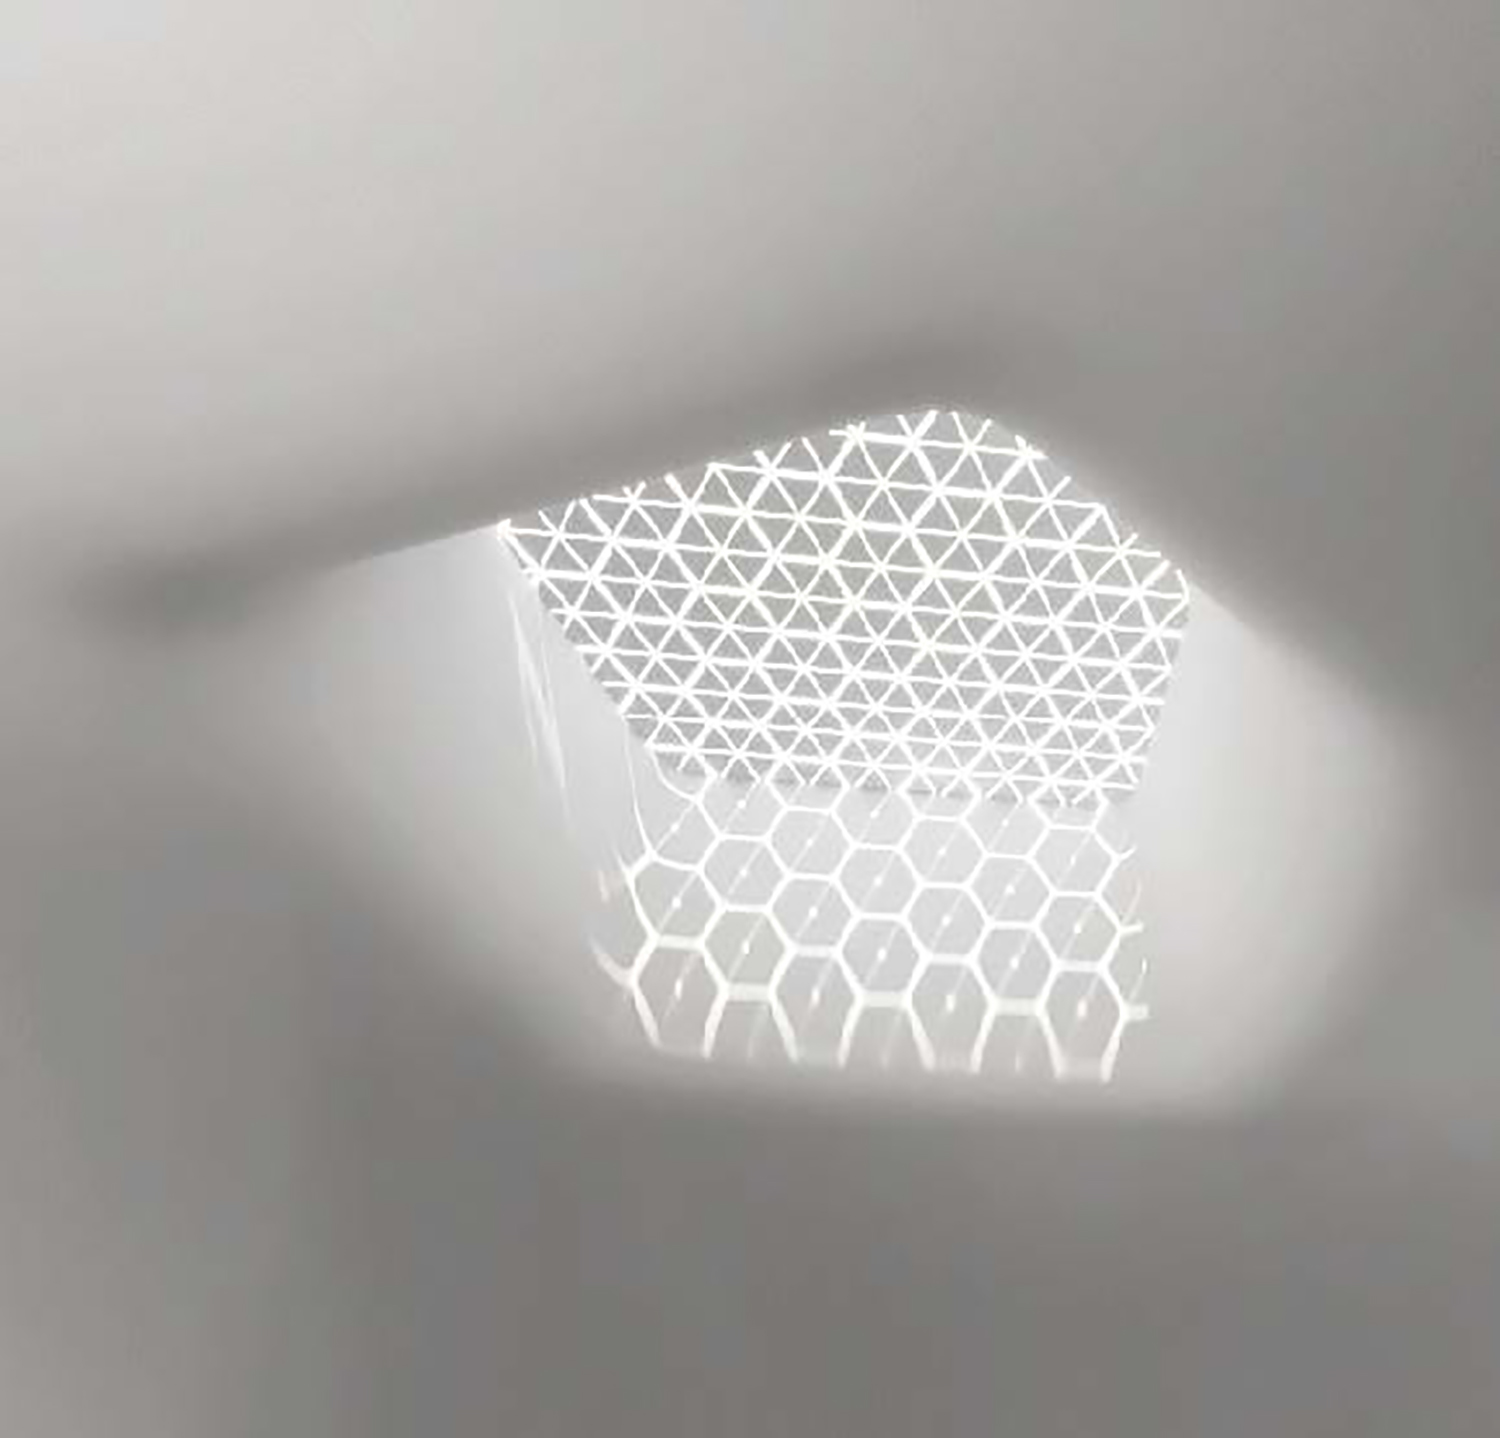 LIght through the whole on the ceiling Bin Wu}